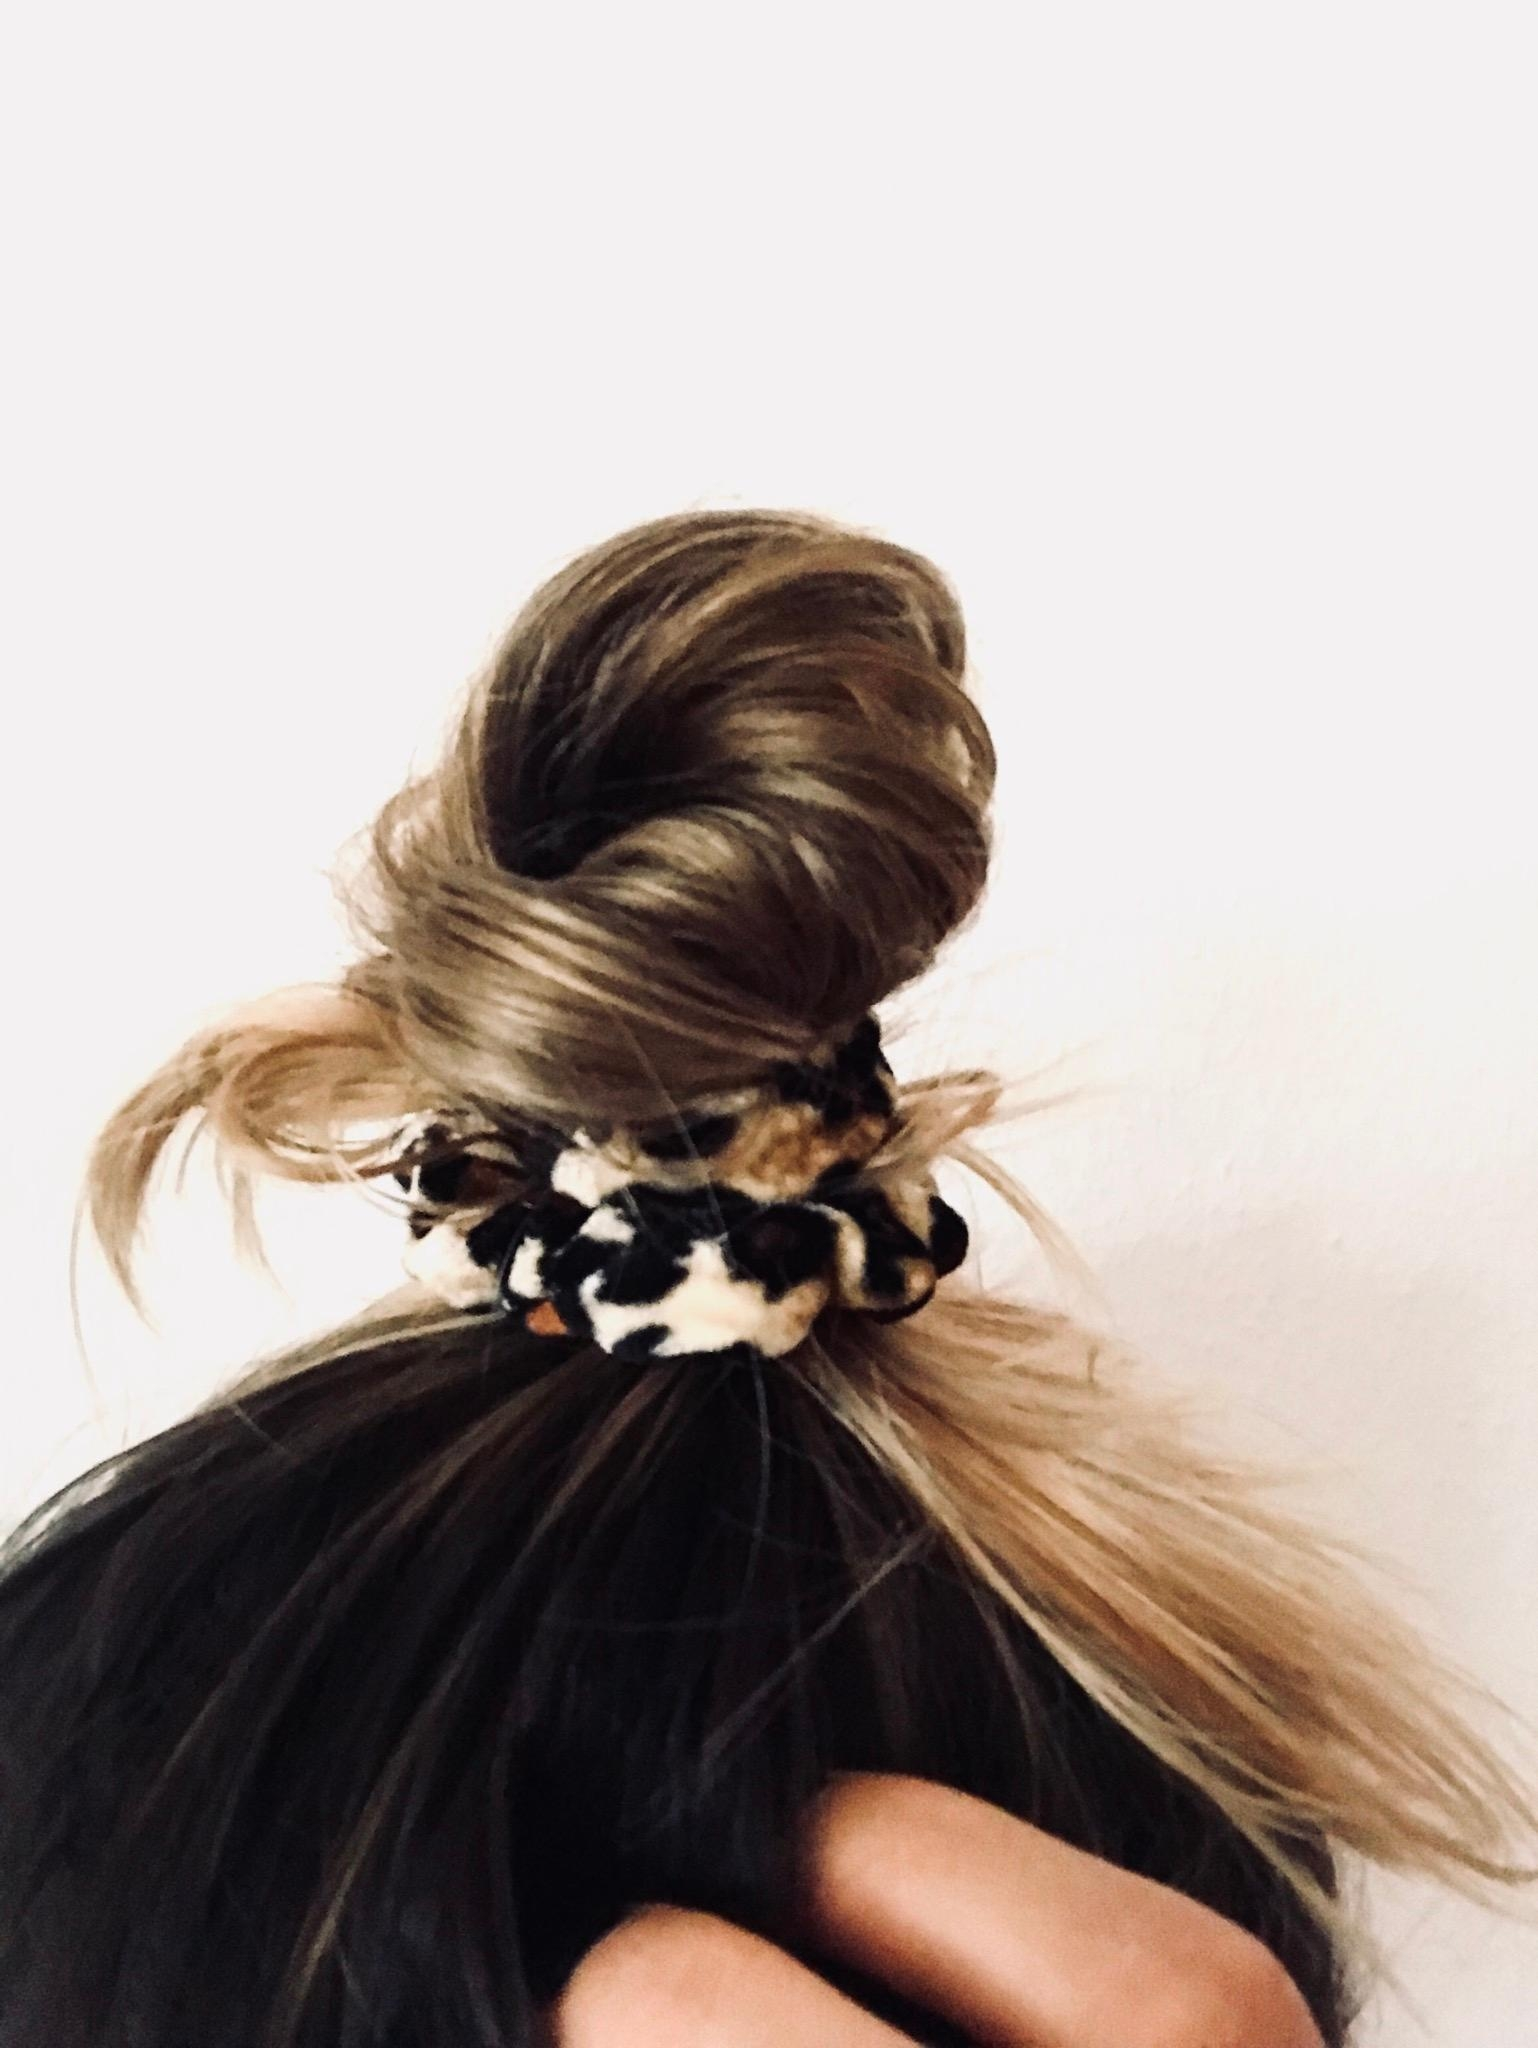 Ich sag ja: absolute Leoliebe 😉